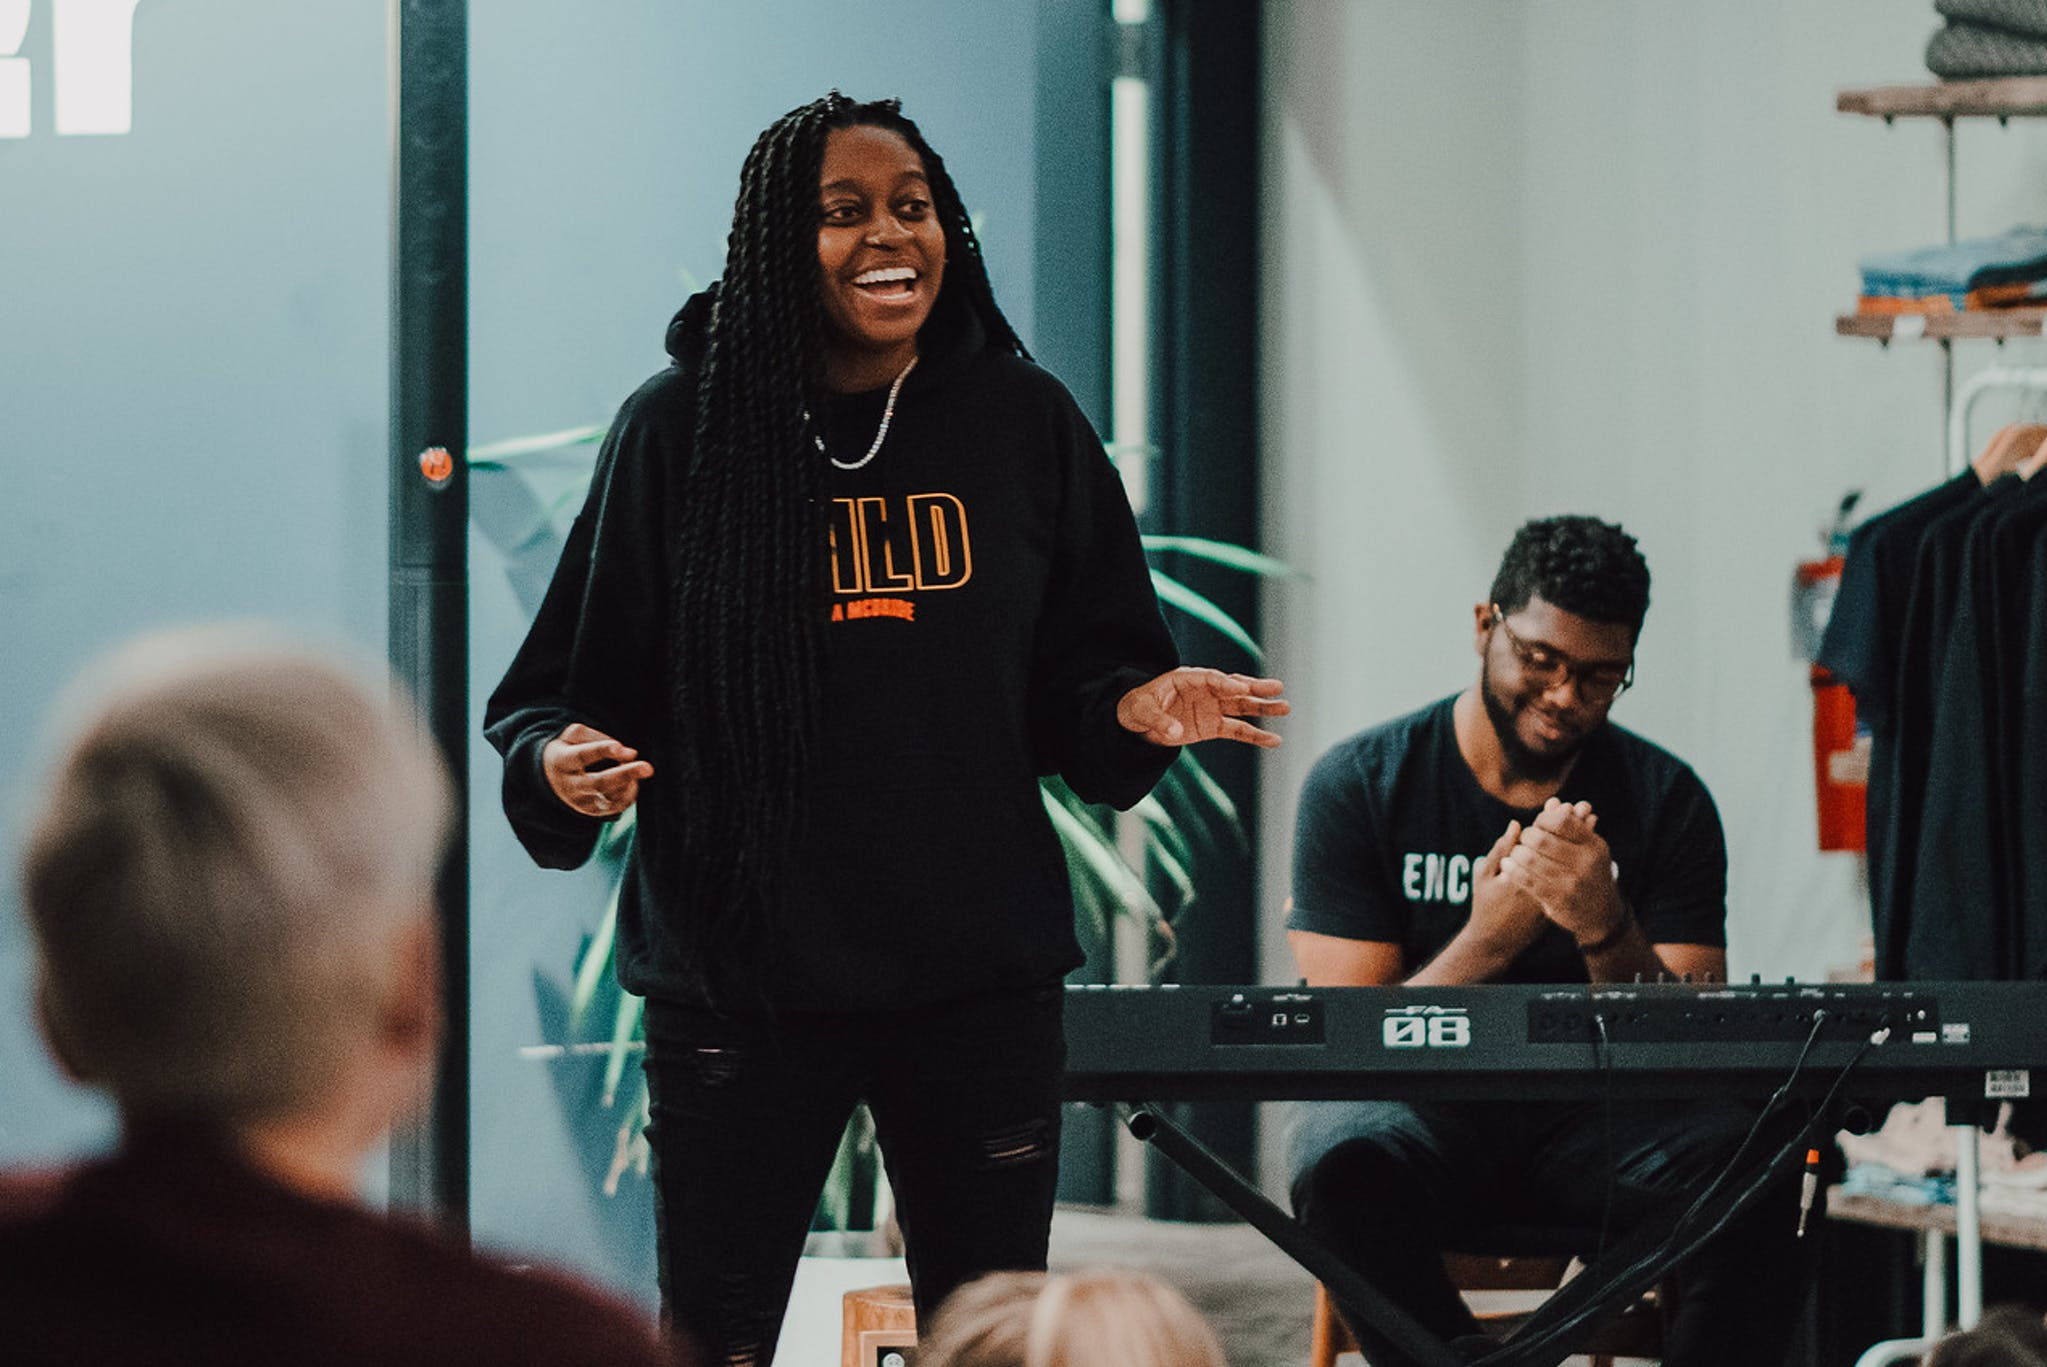 Celebrating Black History Month with Sofar Sounds